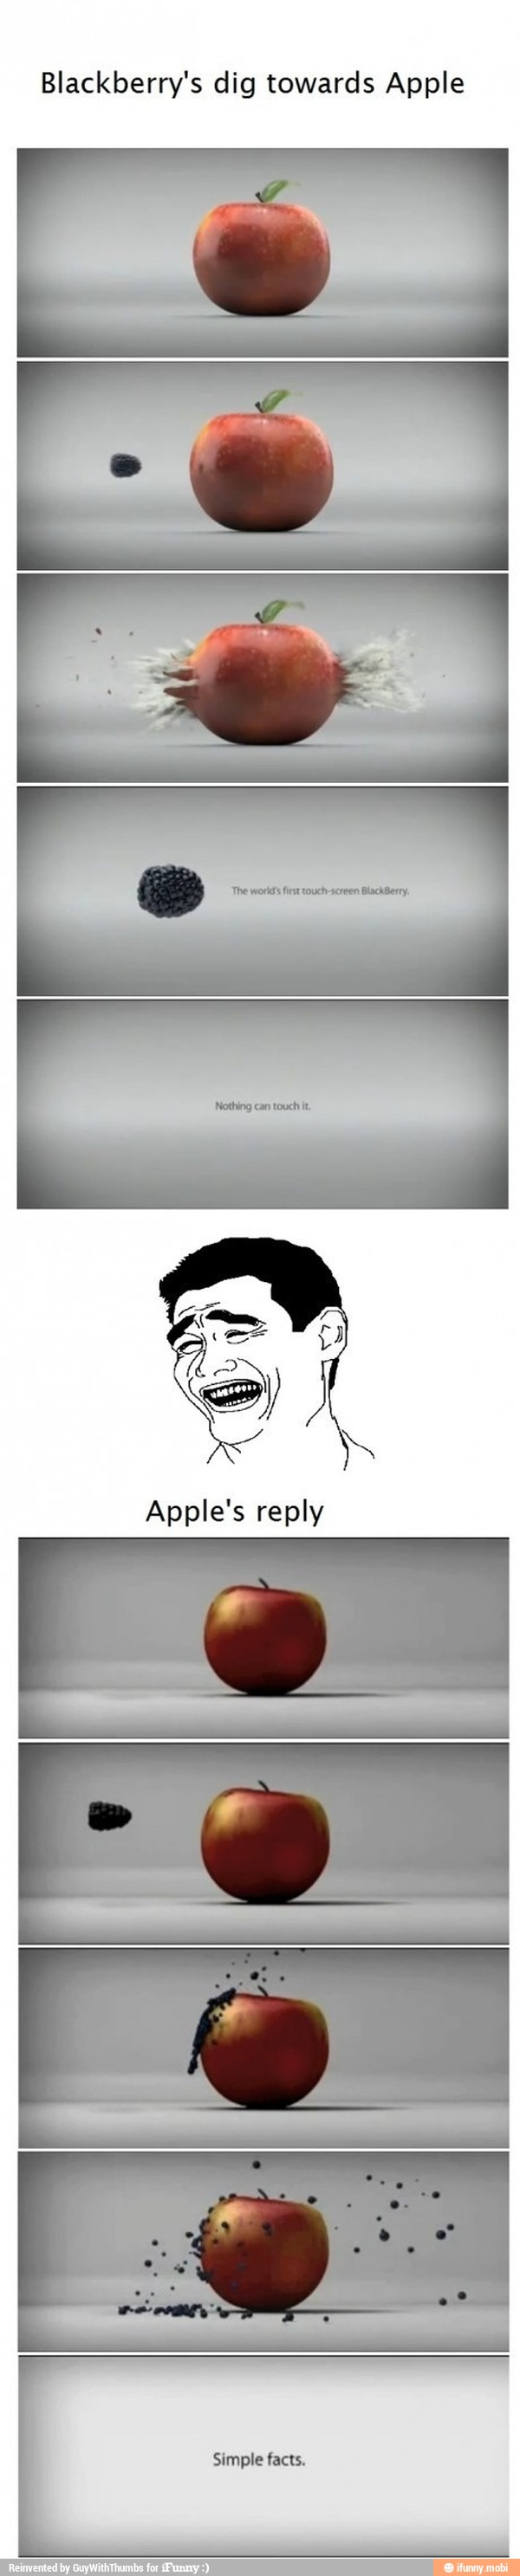 Apples reply